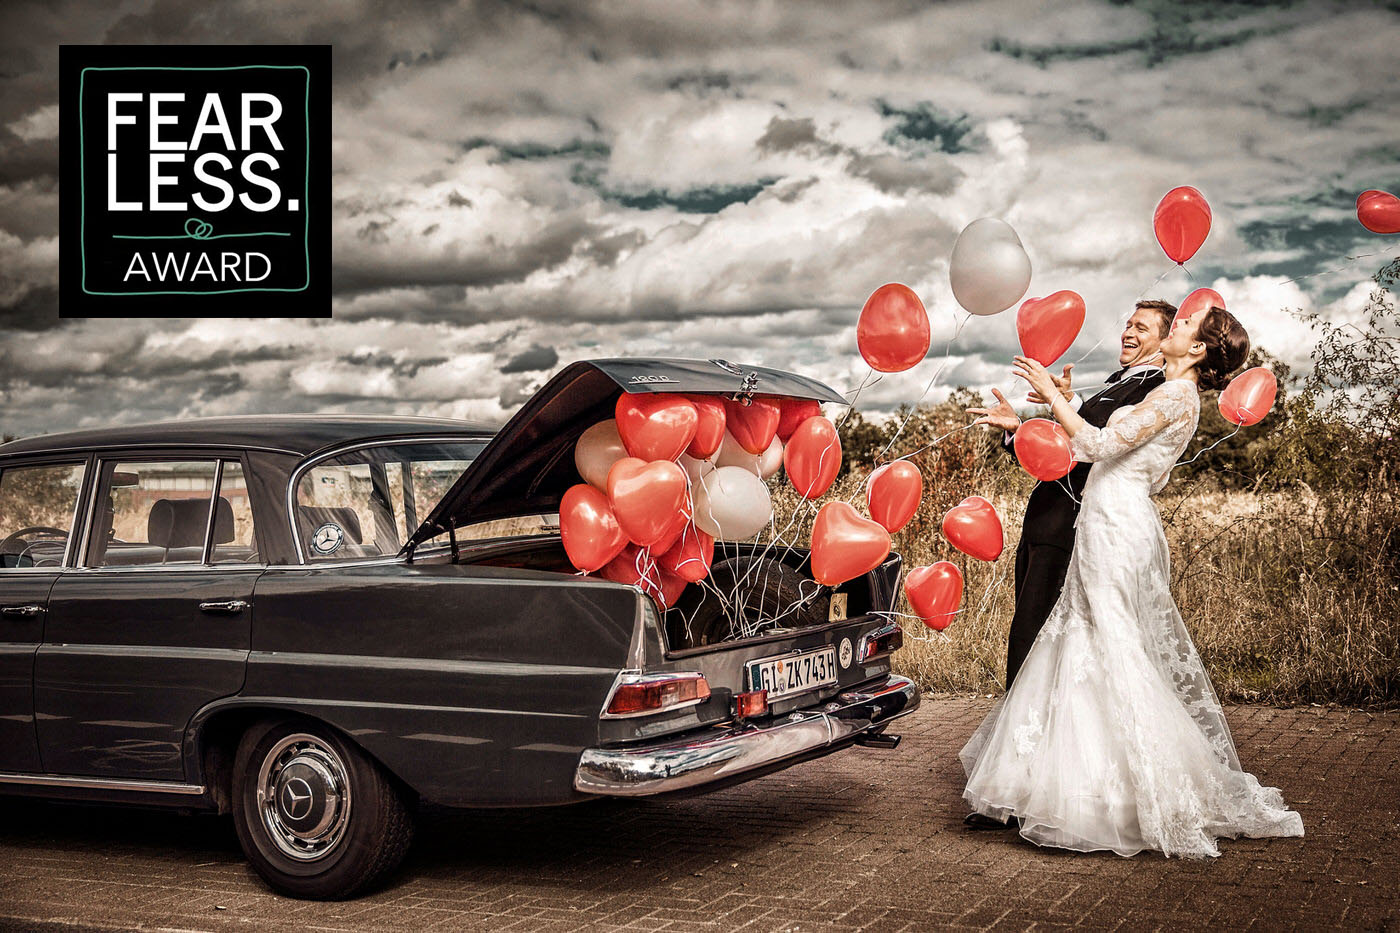 award-winning-wedding-photos-ispwp-fearless-30